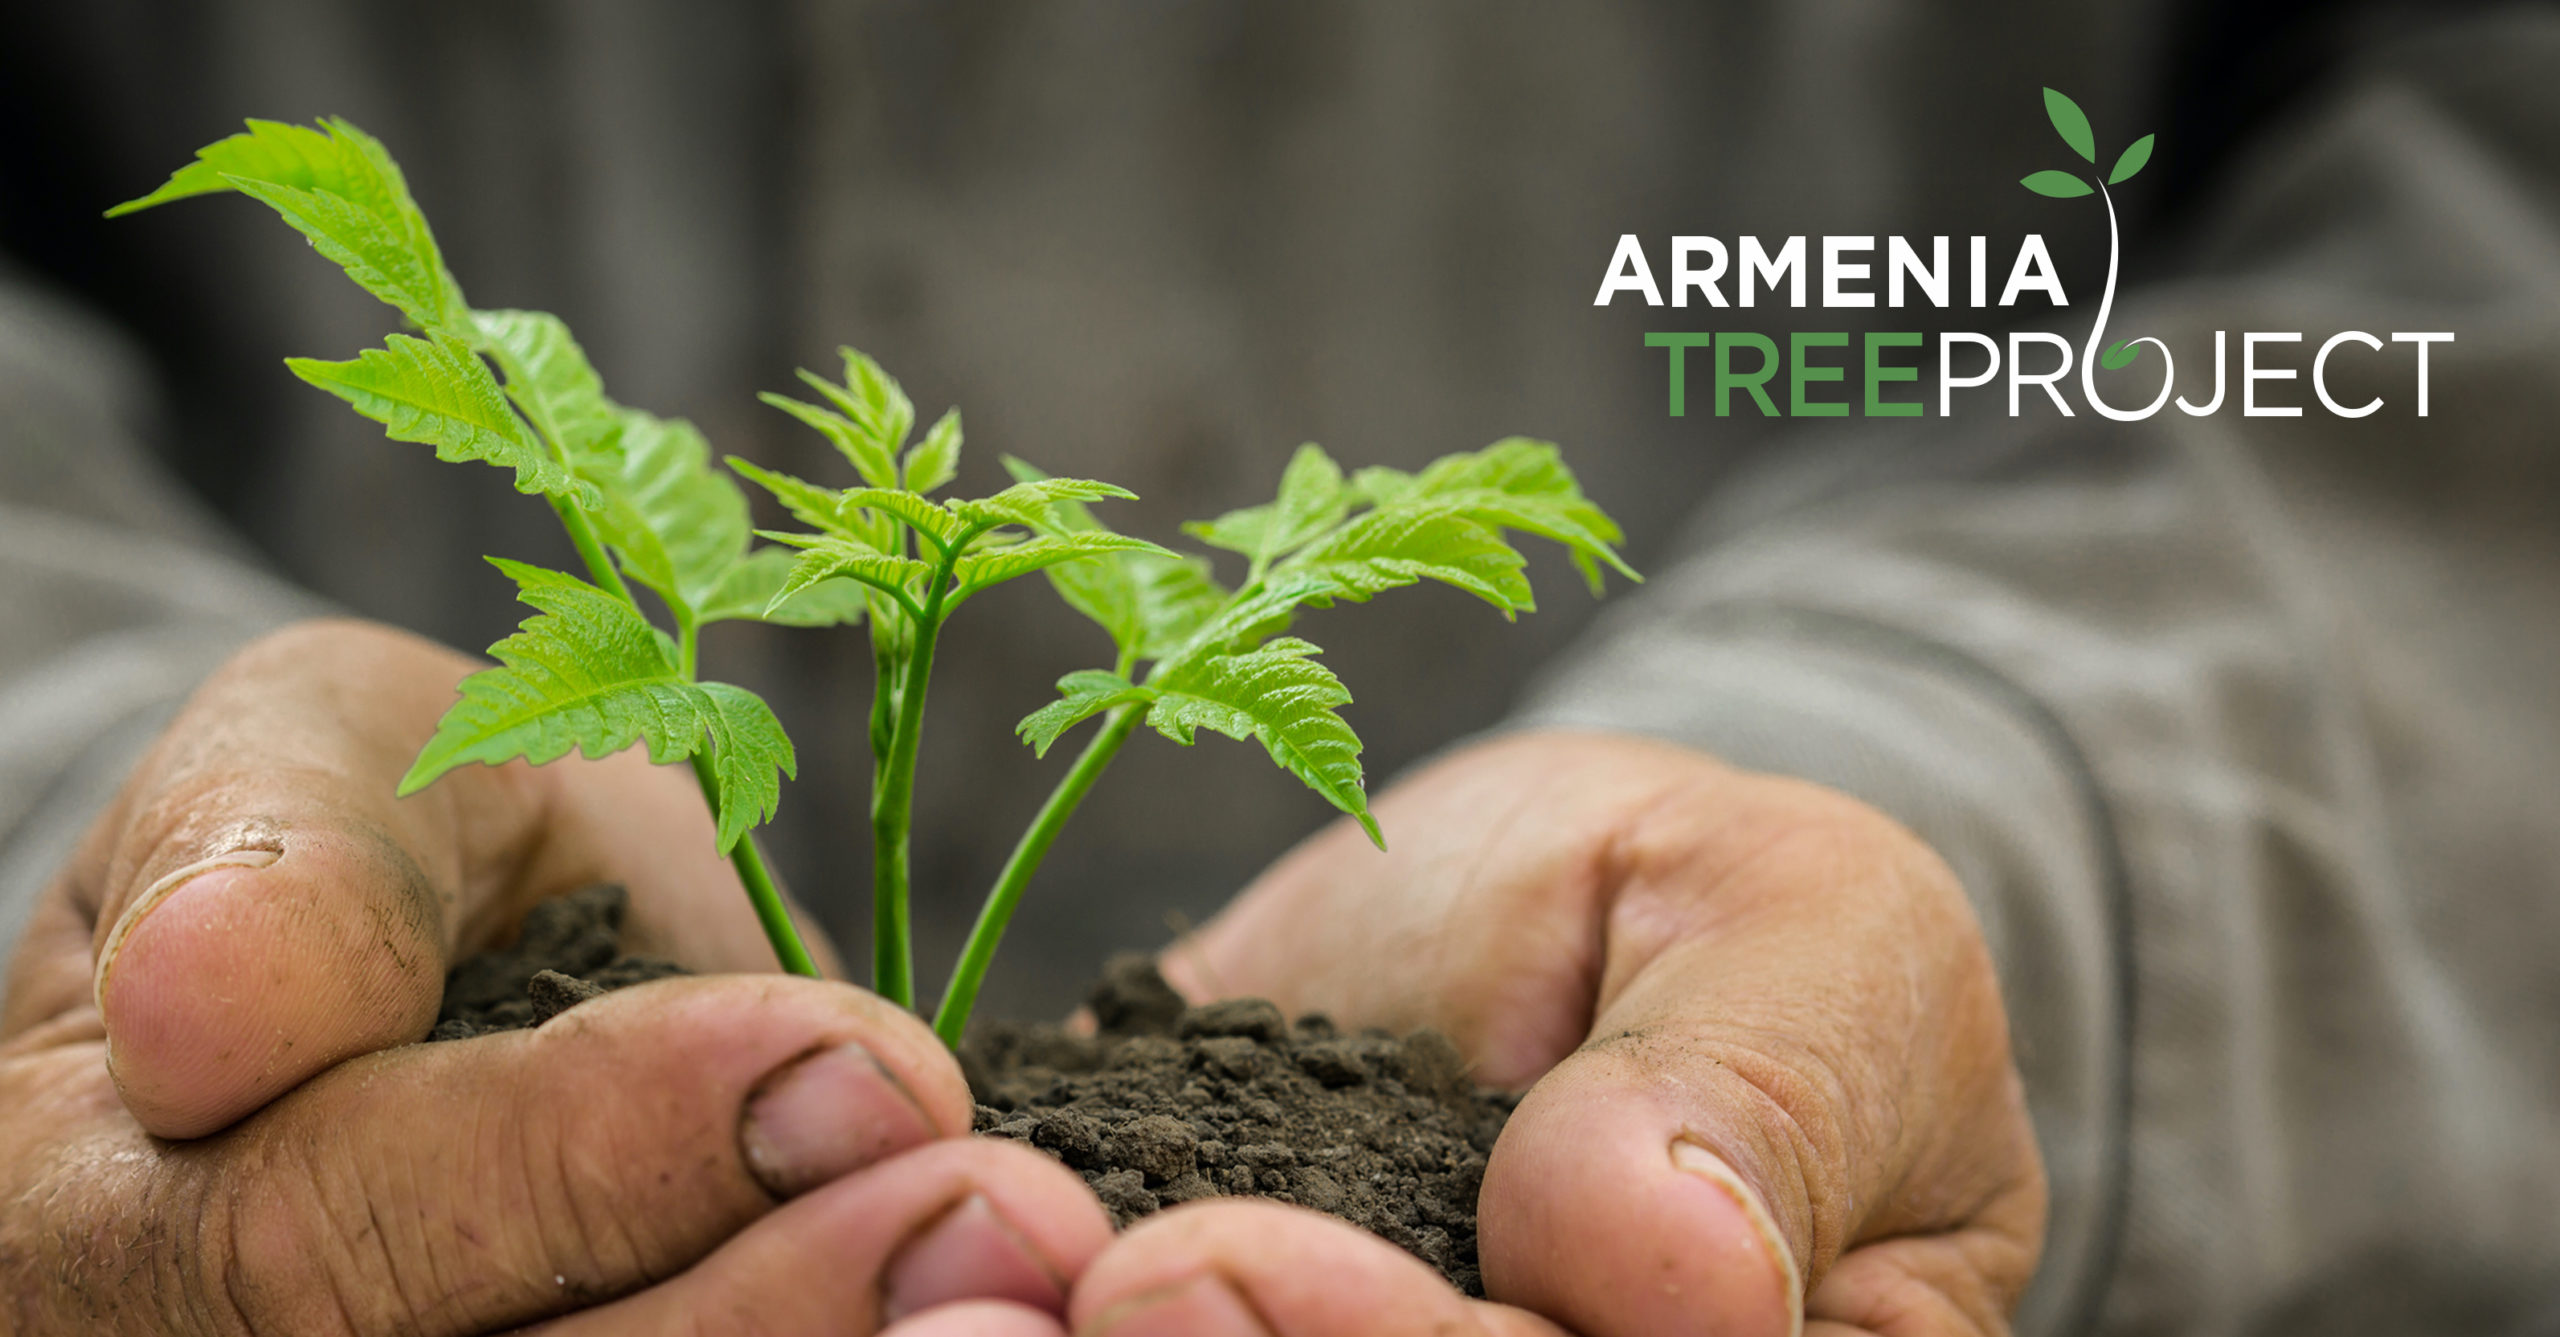 Armenian Tree Project